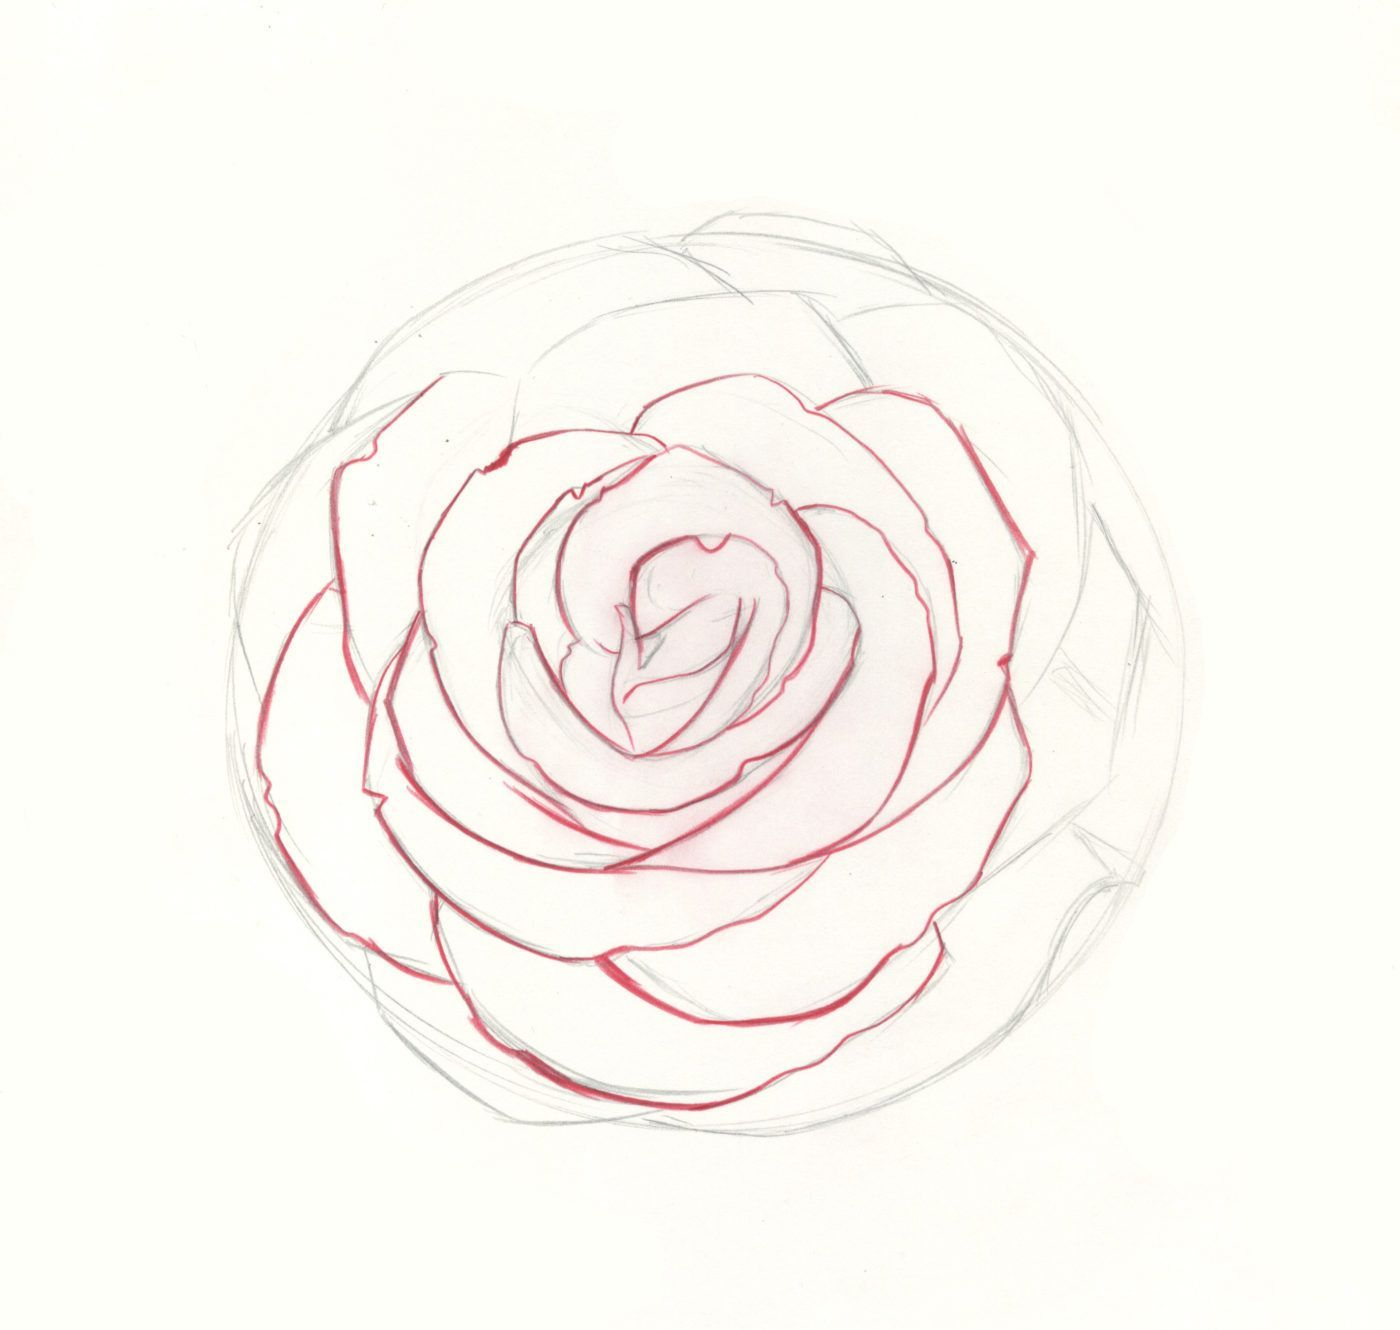 How to Draw Roses | An Easy and Complete Step-by-Step Guide